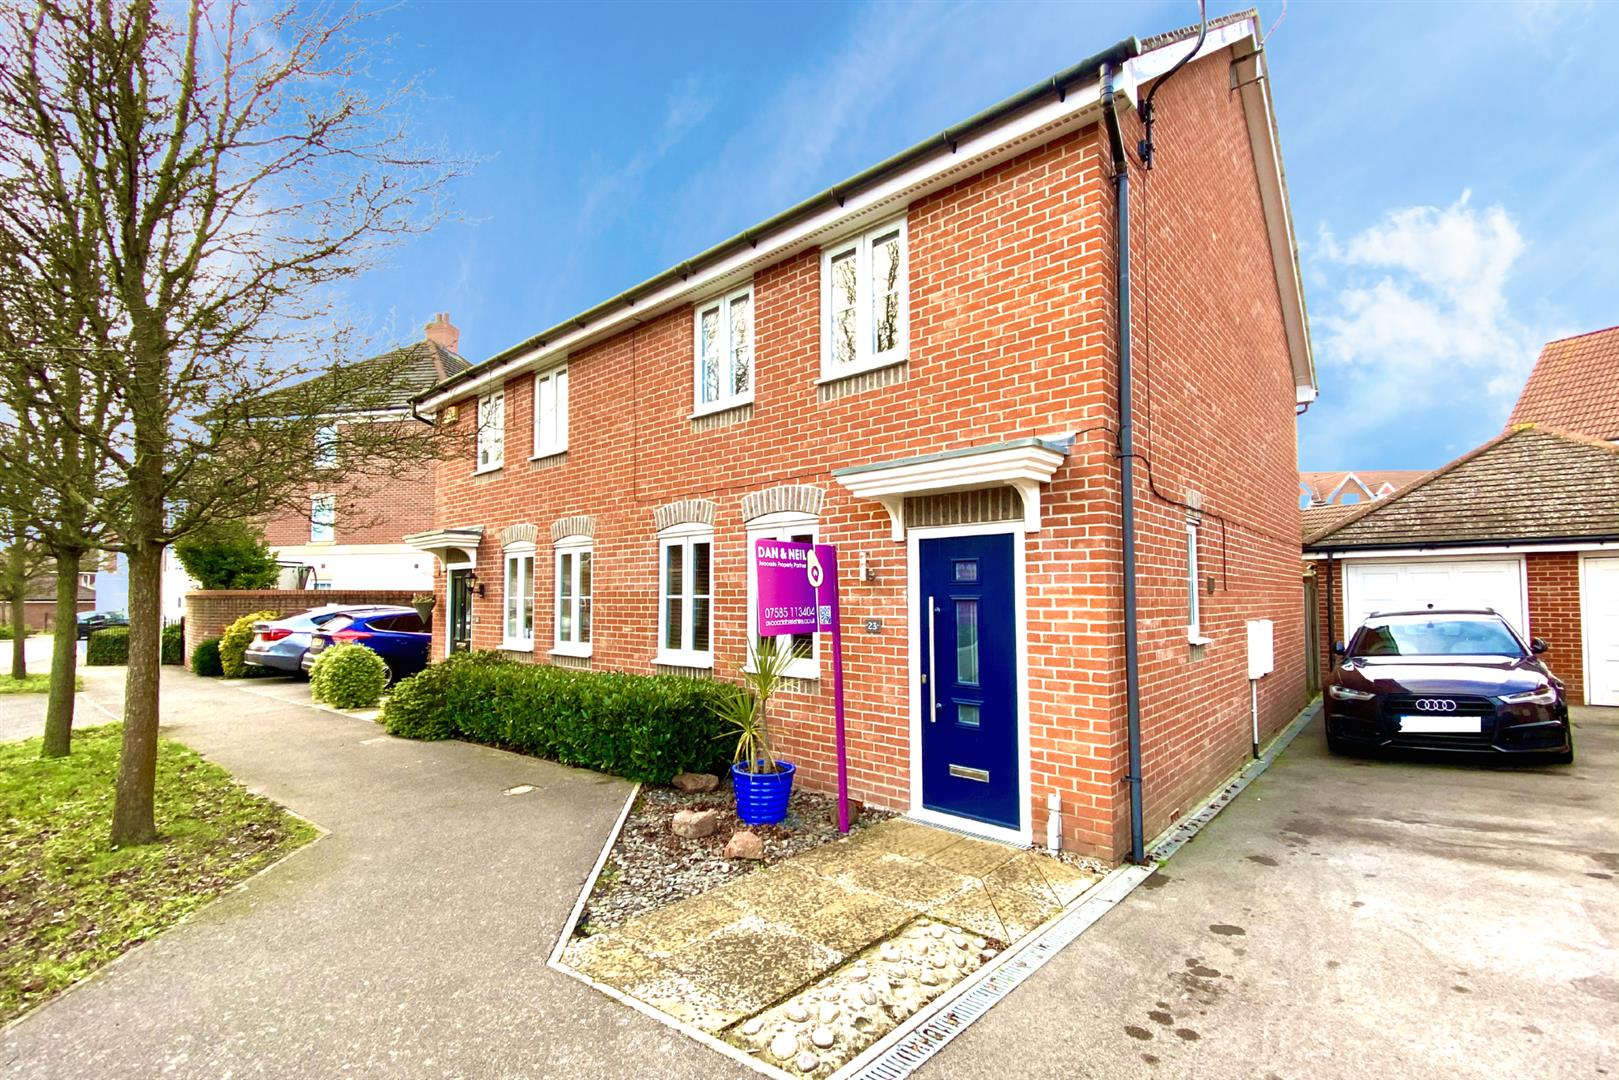 3 bed semi-detached for sale in Shinfield  - Property Image 1